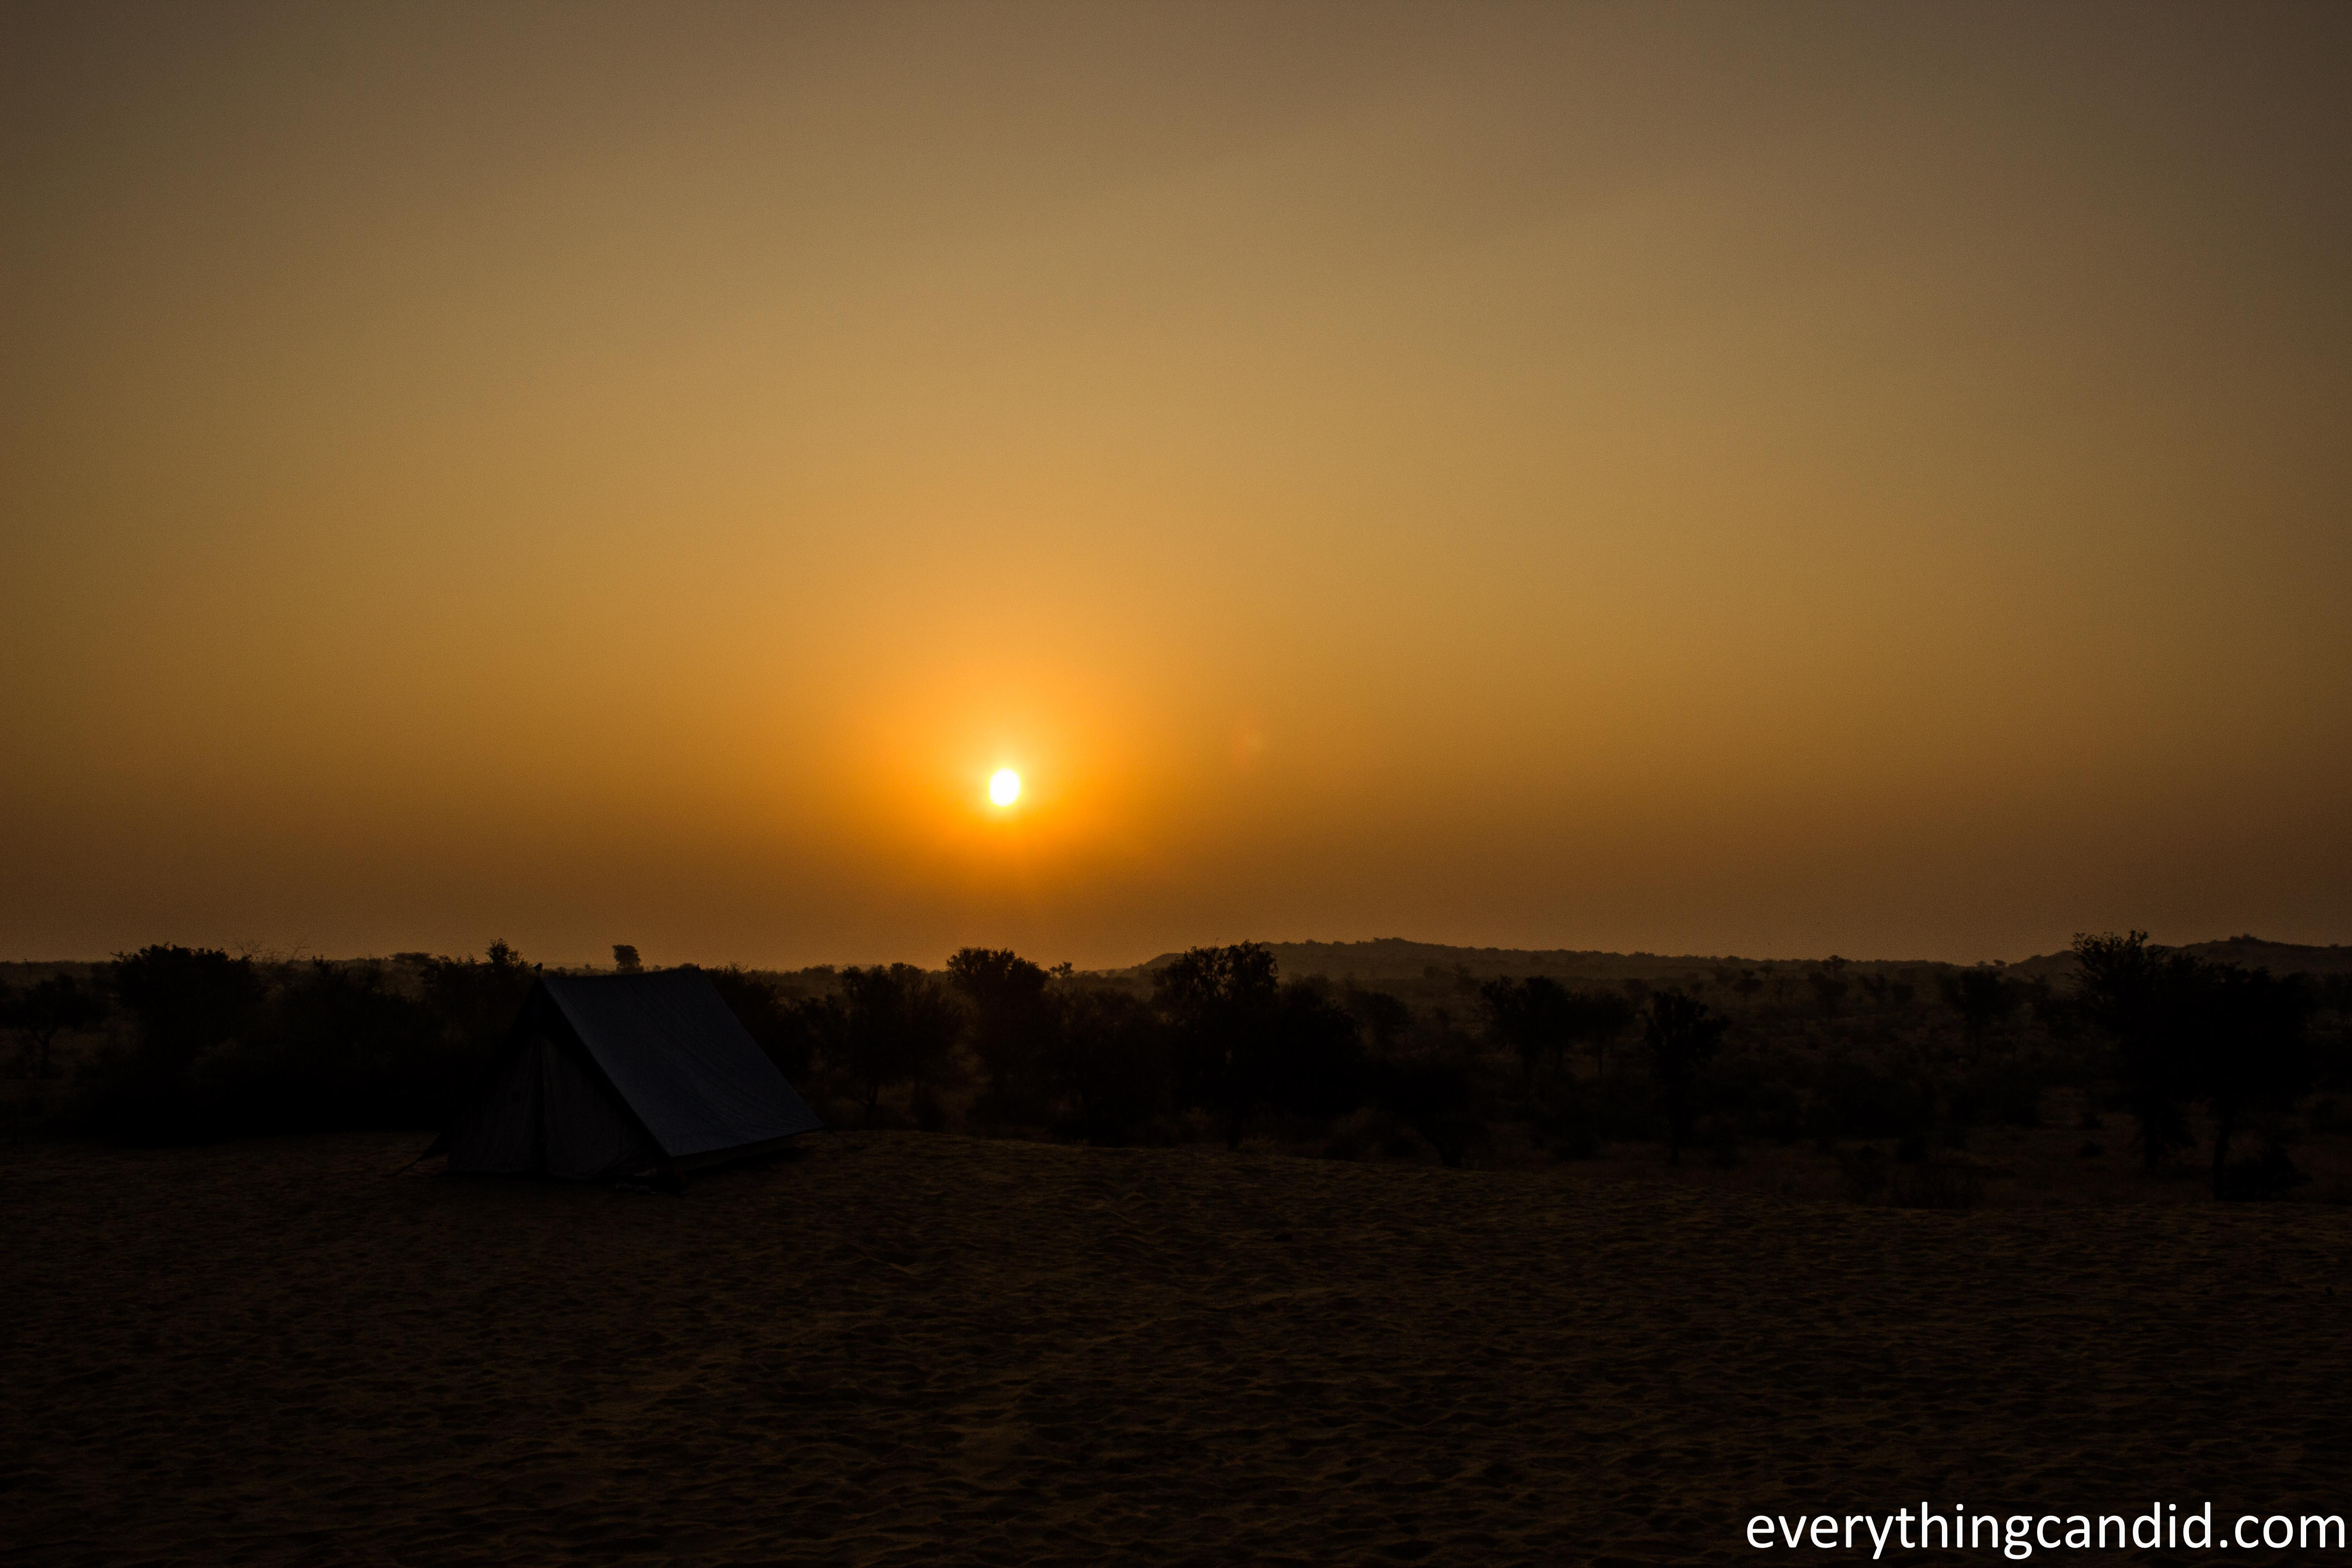 desert essay Operation desert storm essay examples 17 total results an introduction to the essay on the topic of a desert storm 934 words 2 pages an overview of the reason .